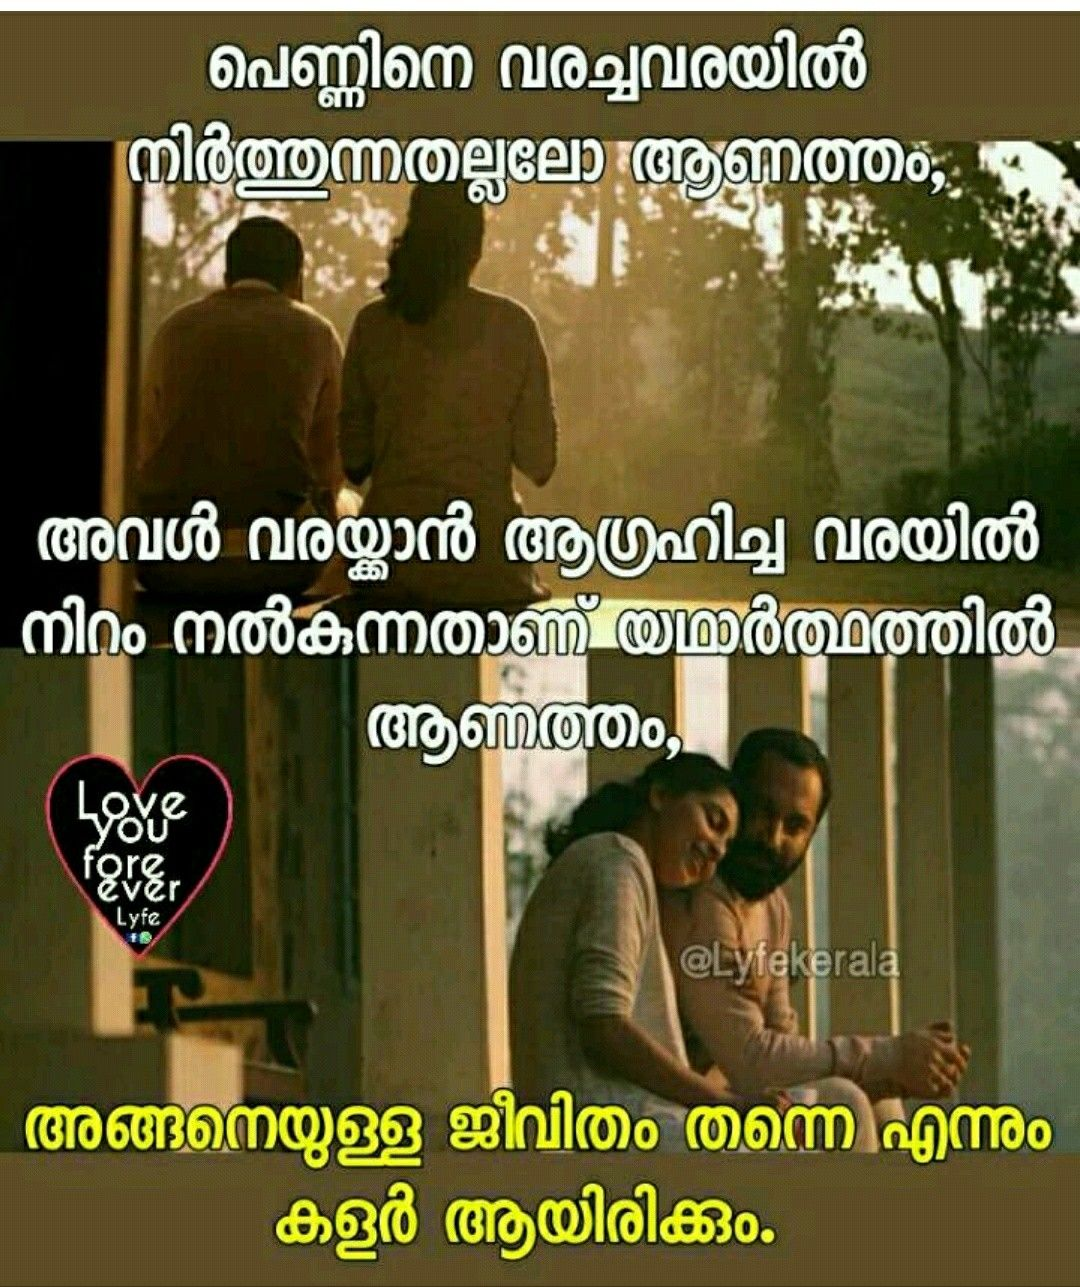 Pin By Seethal On À´®à´²à´¯ À´³ À´š À´¨ À´¤à´•àµ¾ Couples Quotes Love Love Quotes In Malayalam Life Quotes